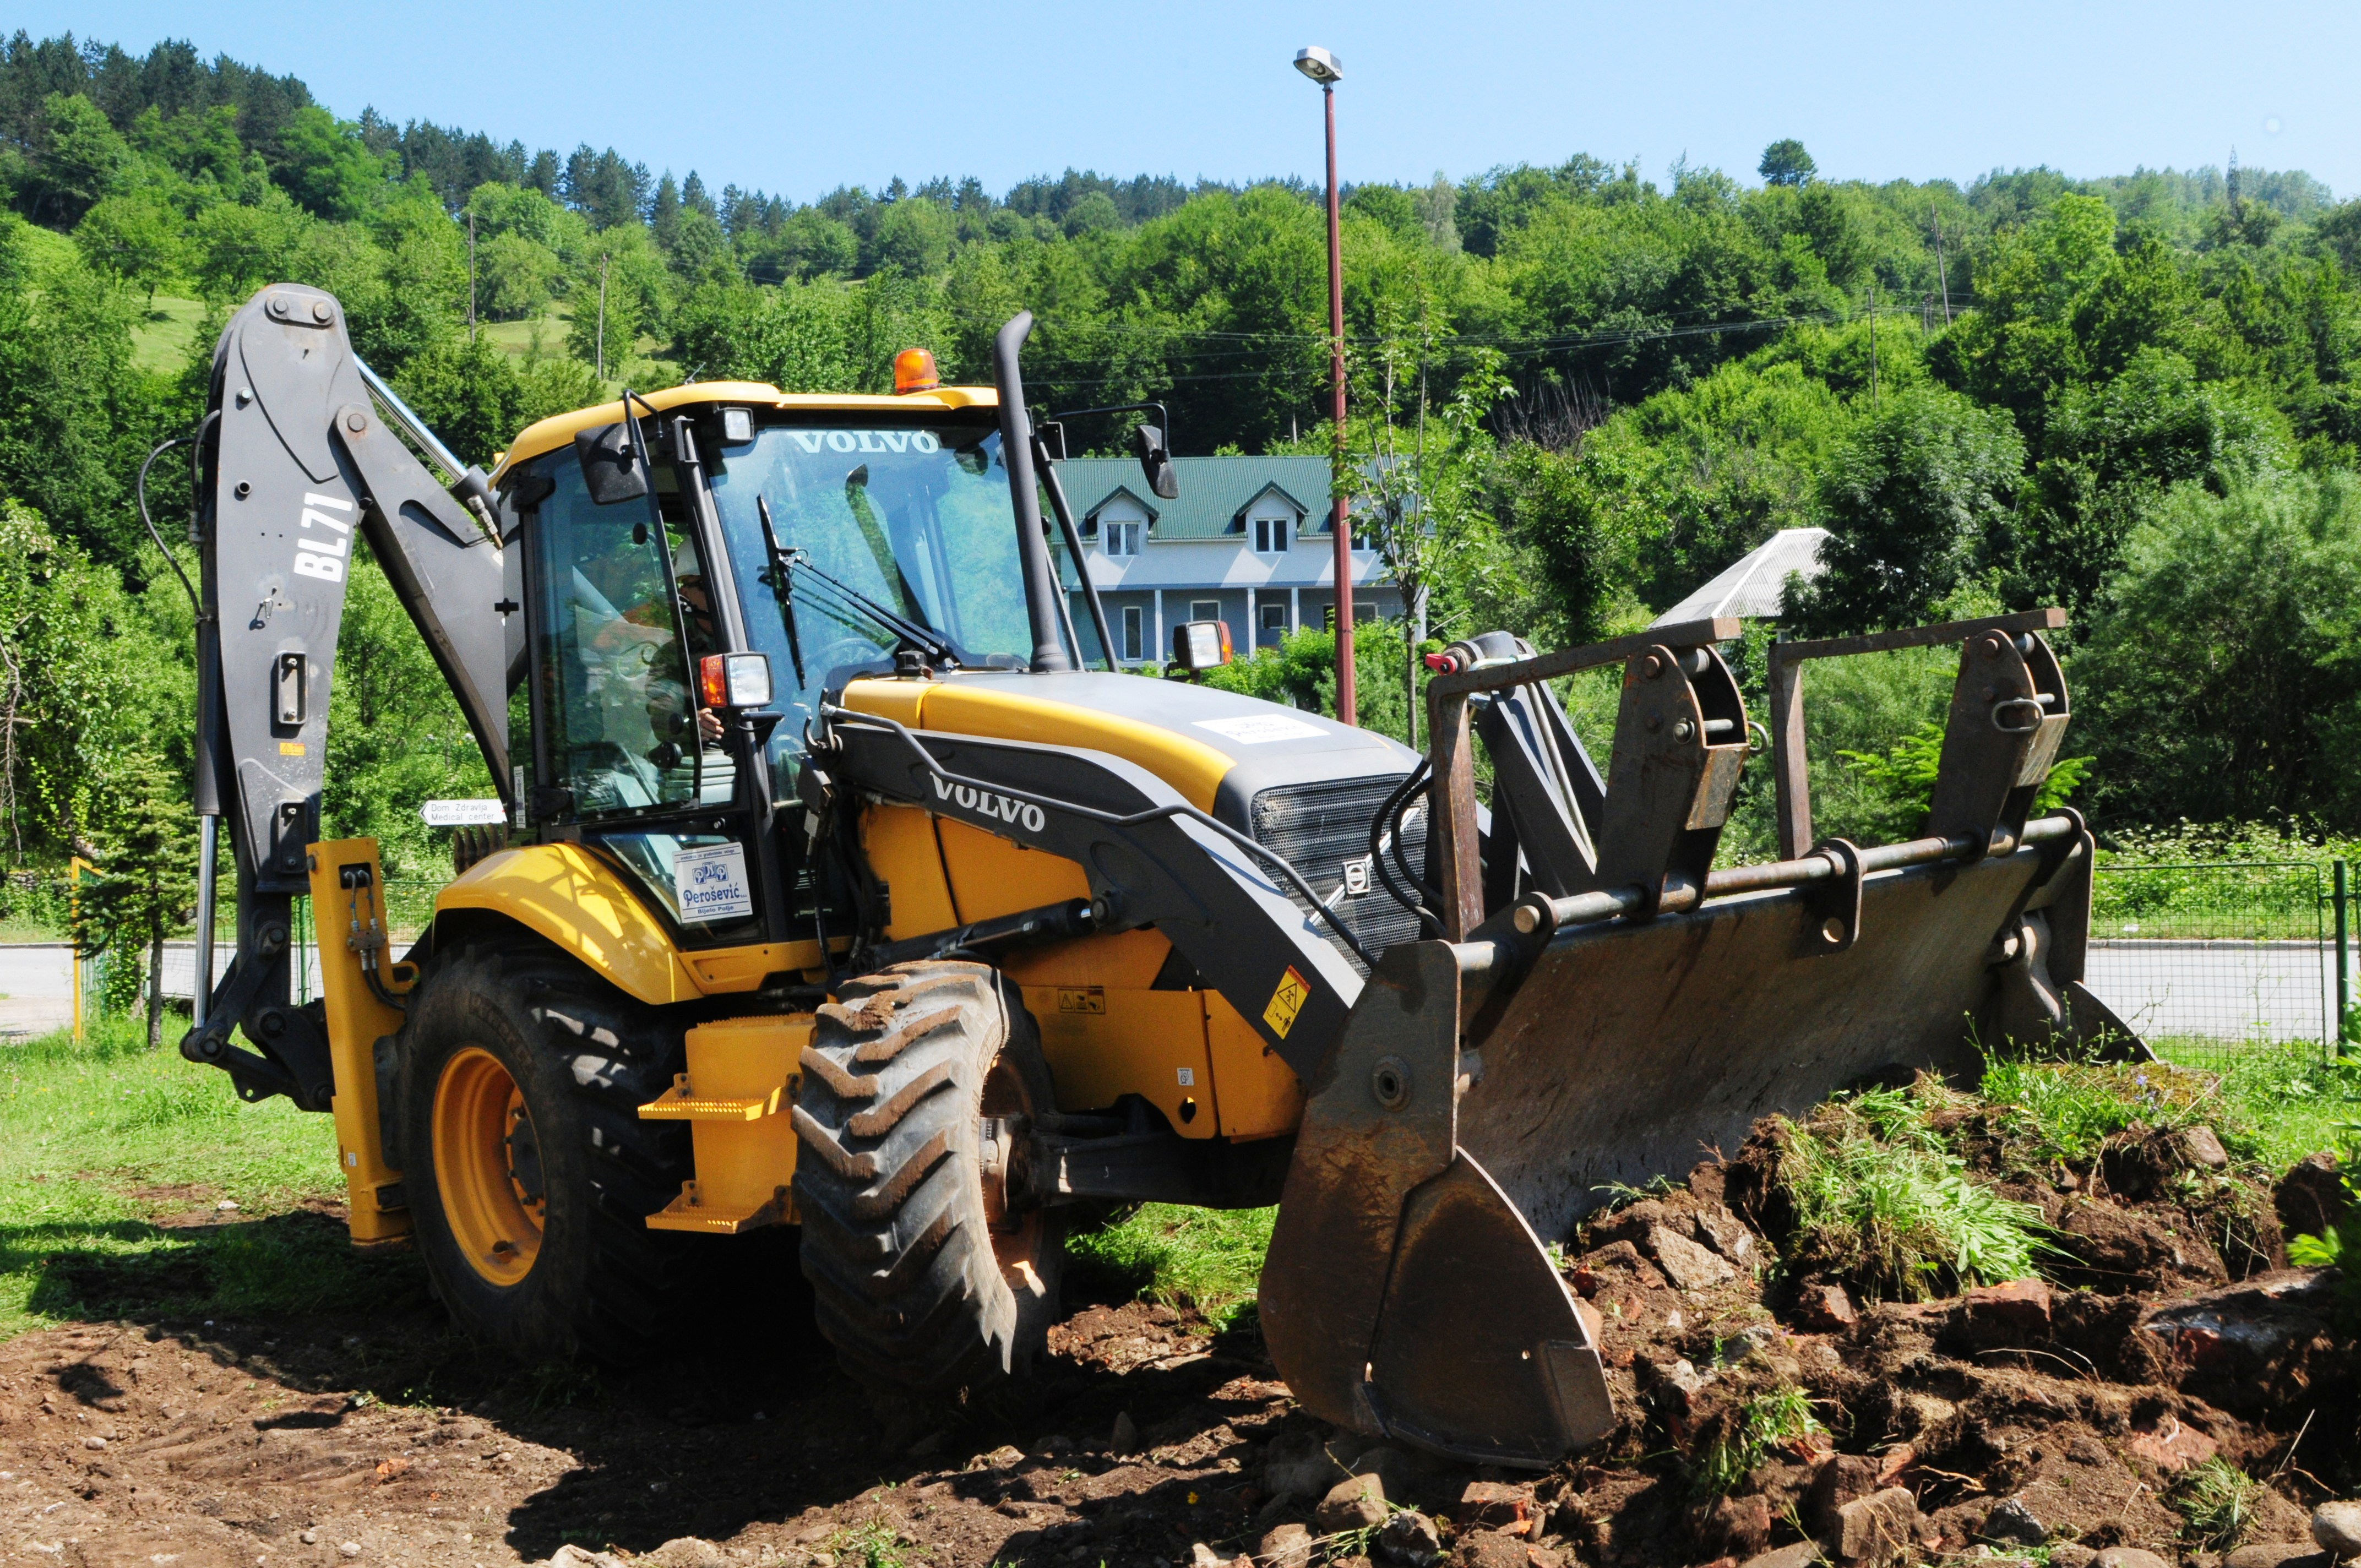 volvo specifications graders bm vhk machine backhoe specs market motor